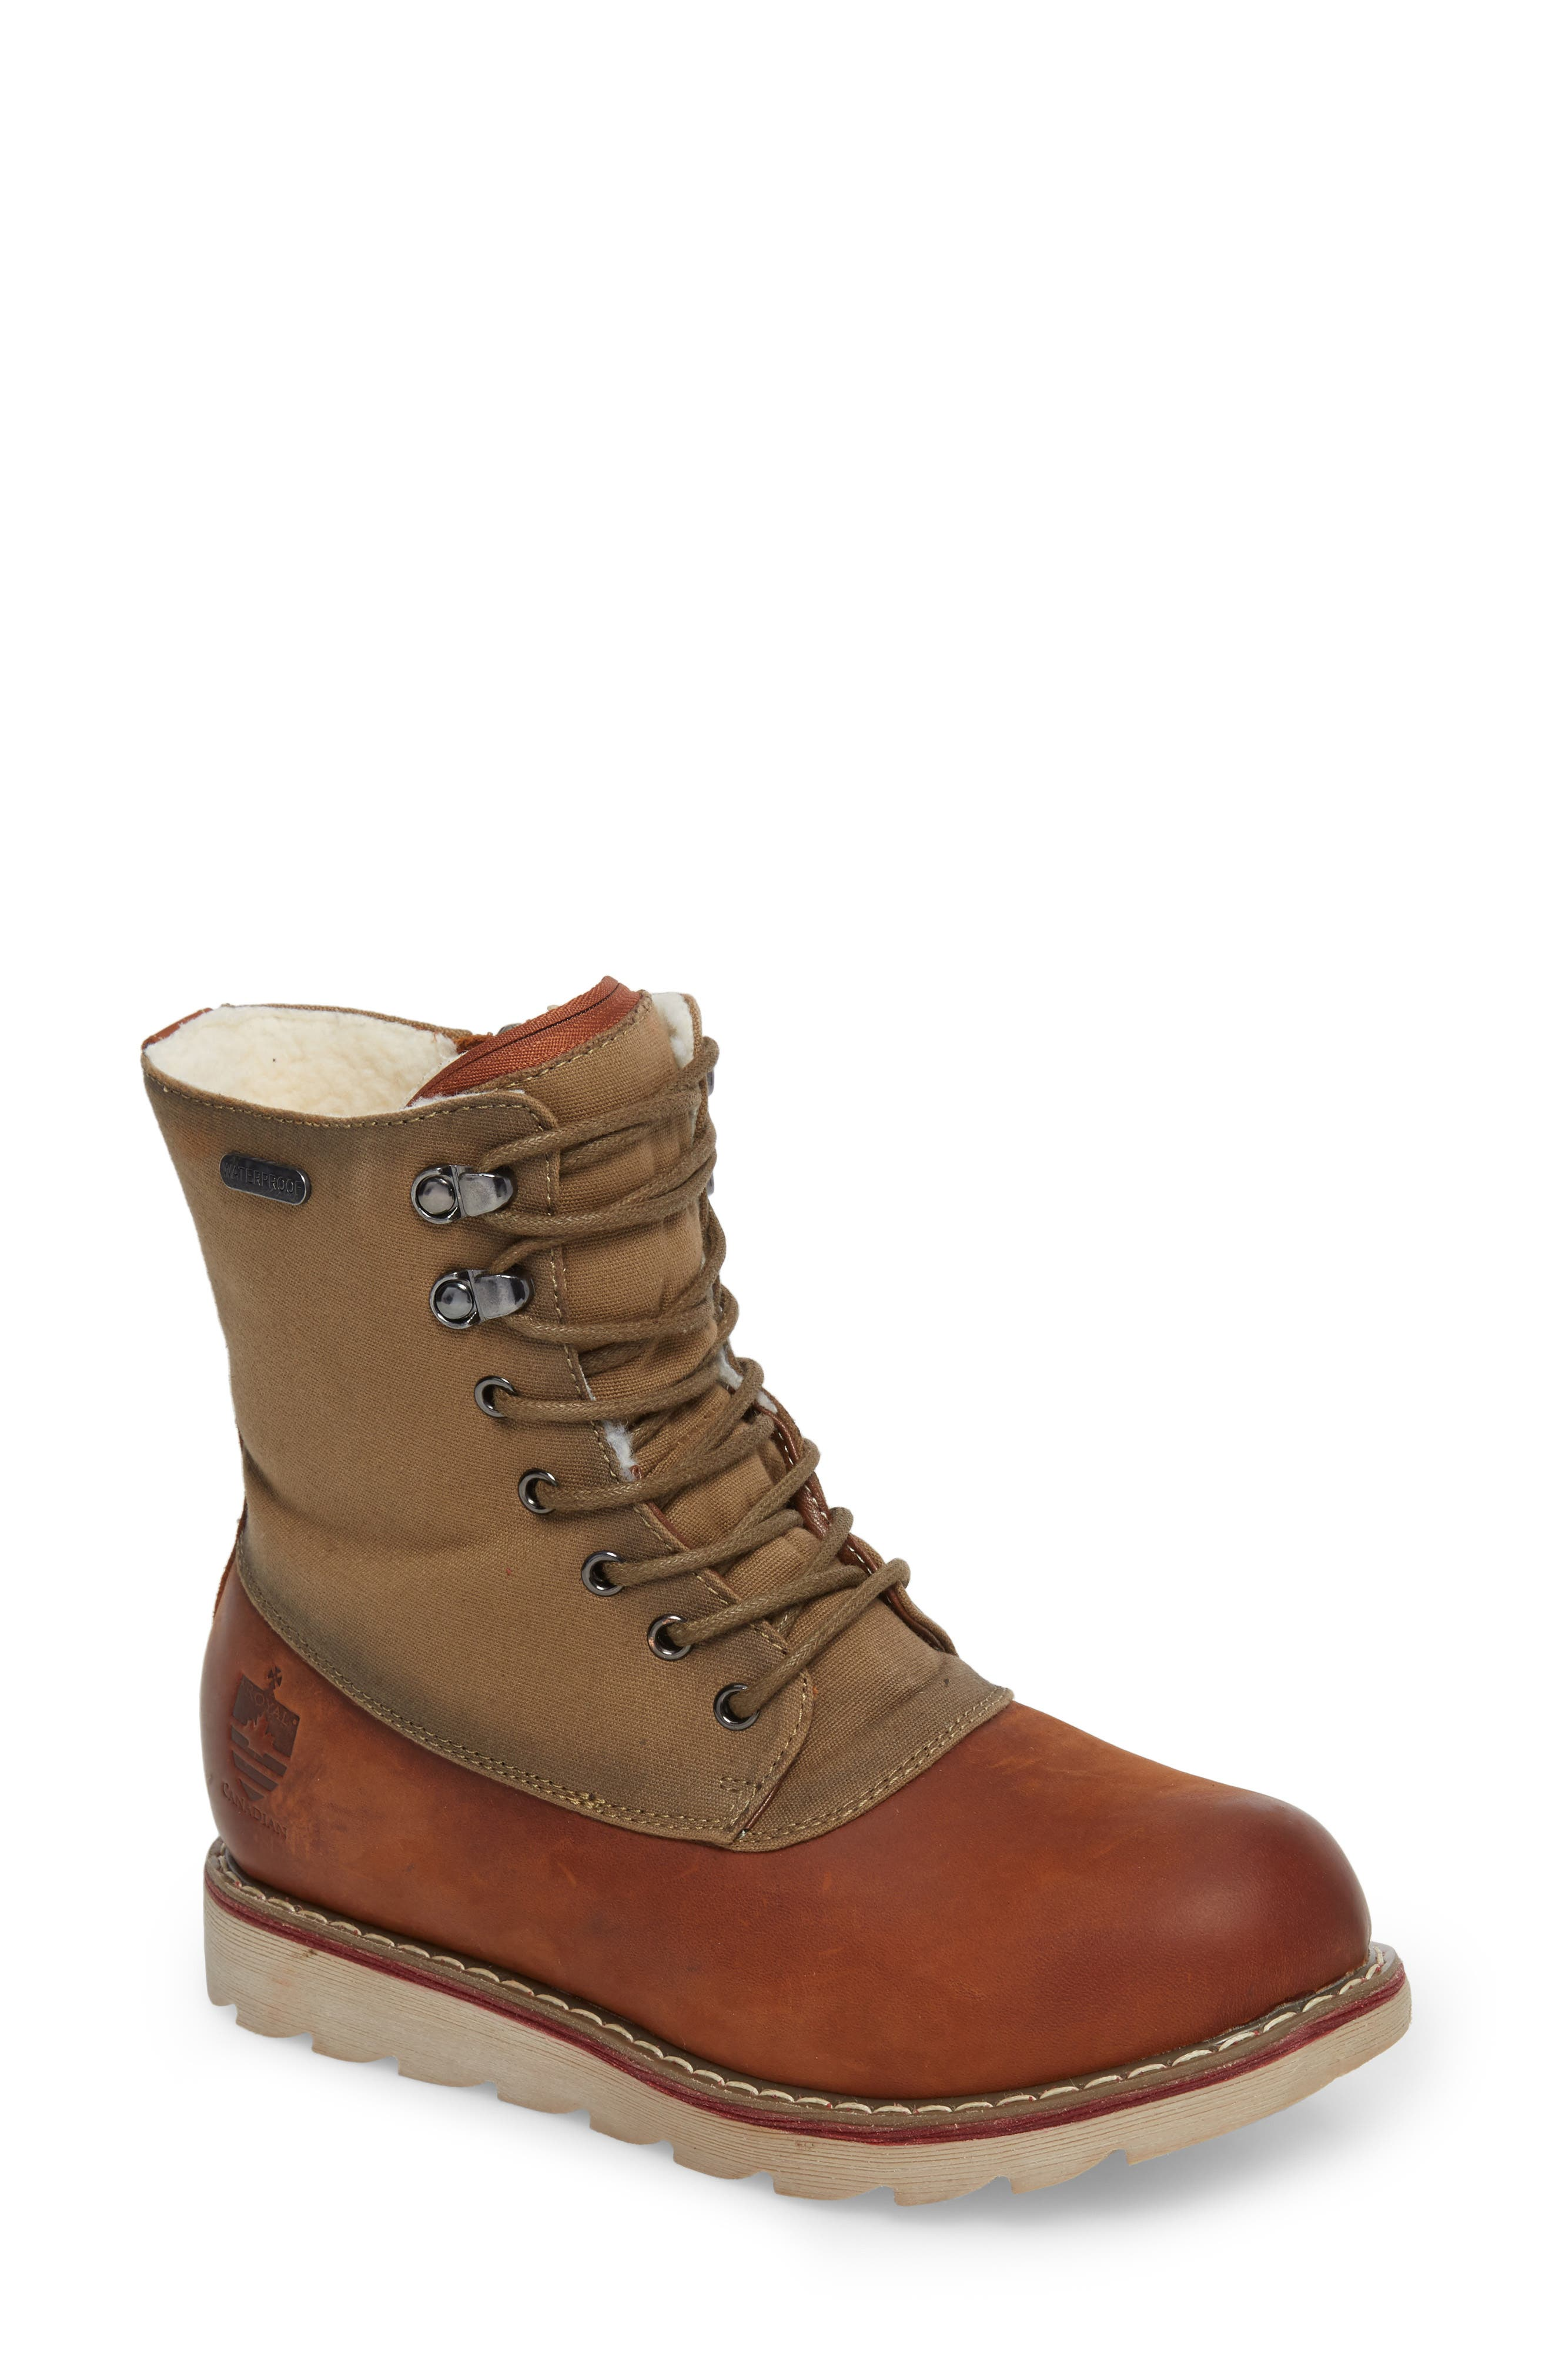 LaSalle Waterproof Insulated Winter Boot,                             Main thumbnail 2, color,